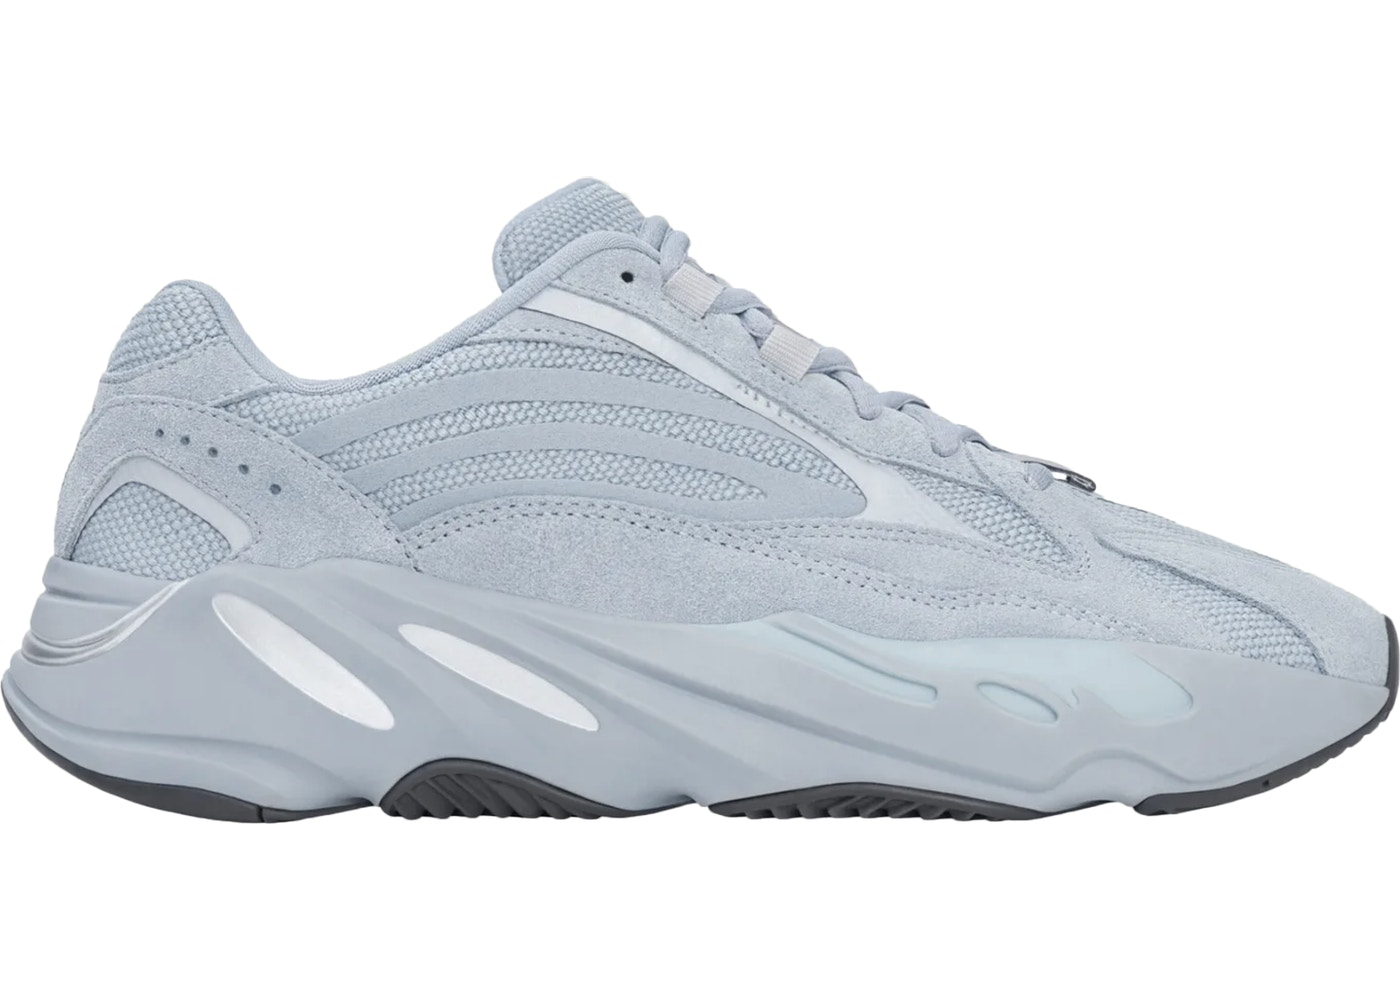 innovative design 9931c 86a54 adidas Yeezy Boost 700 V2 Hospital Blue